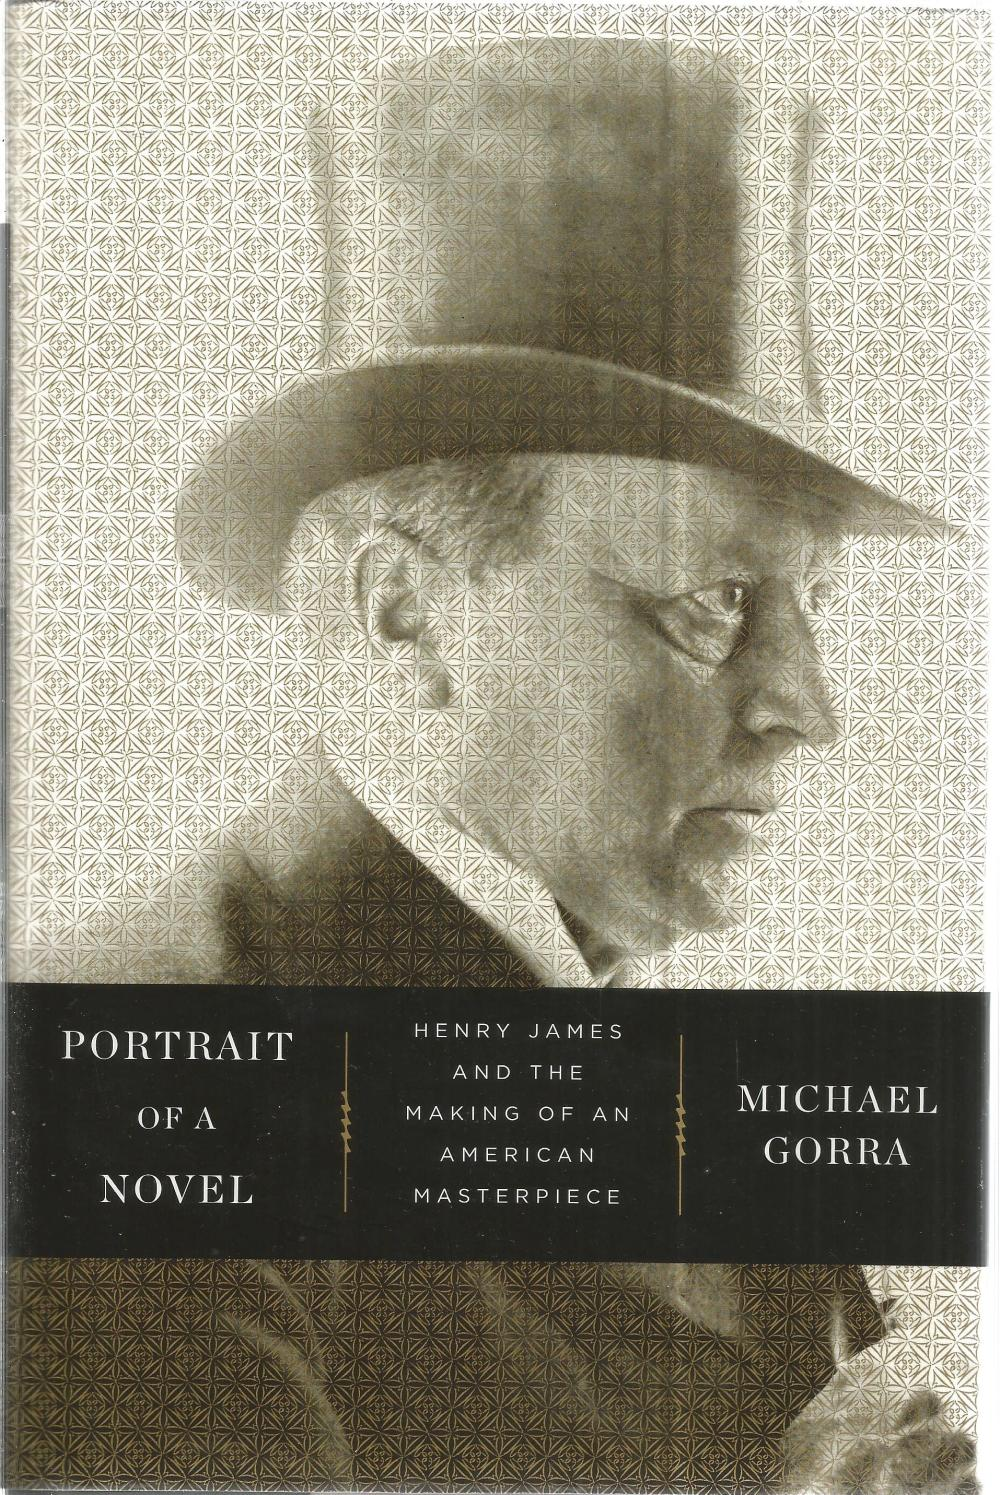 Portrait of a Novel Henry James and the making of an American Masterpiece by Michael Gorra. Unsigned